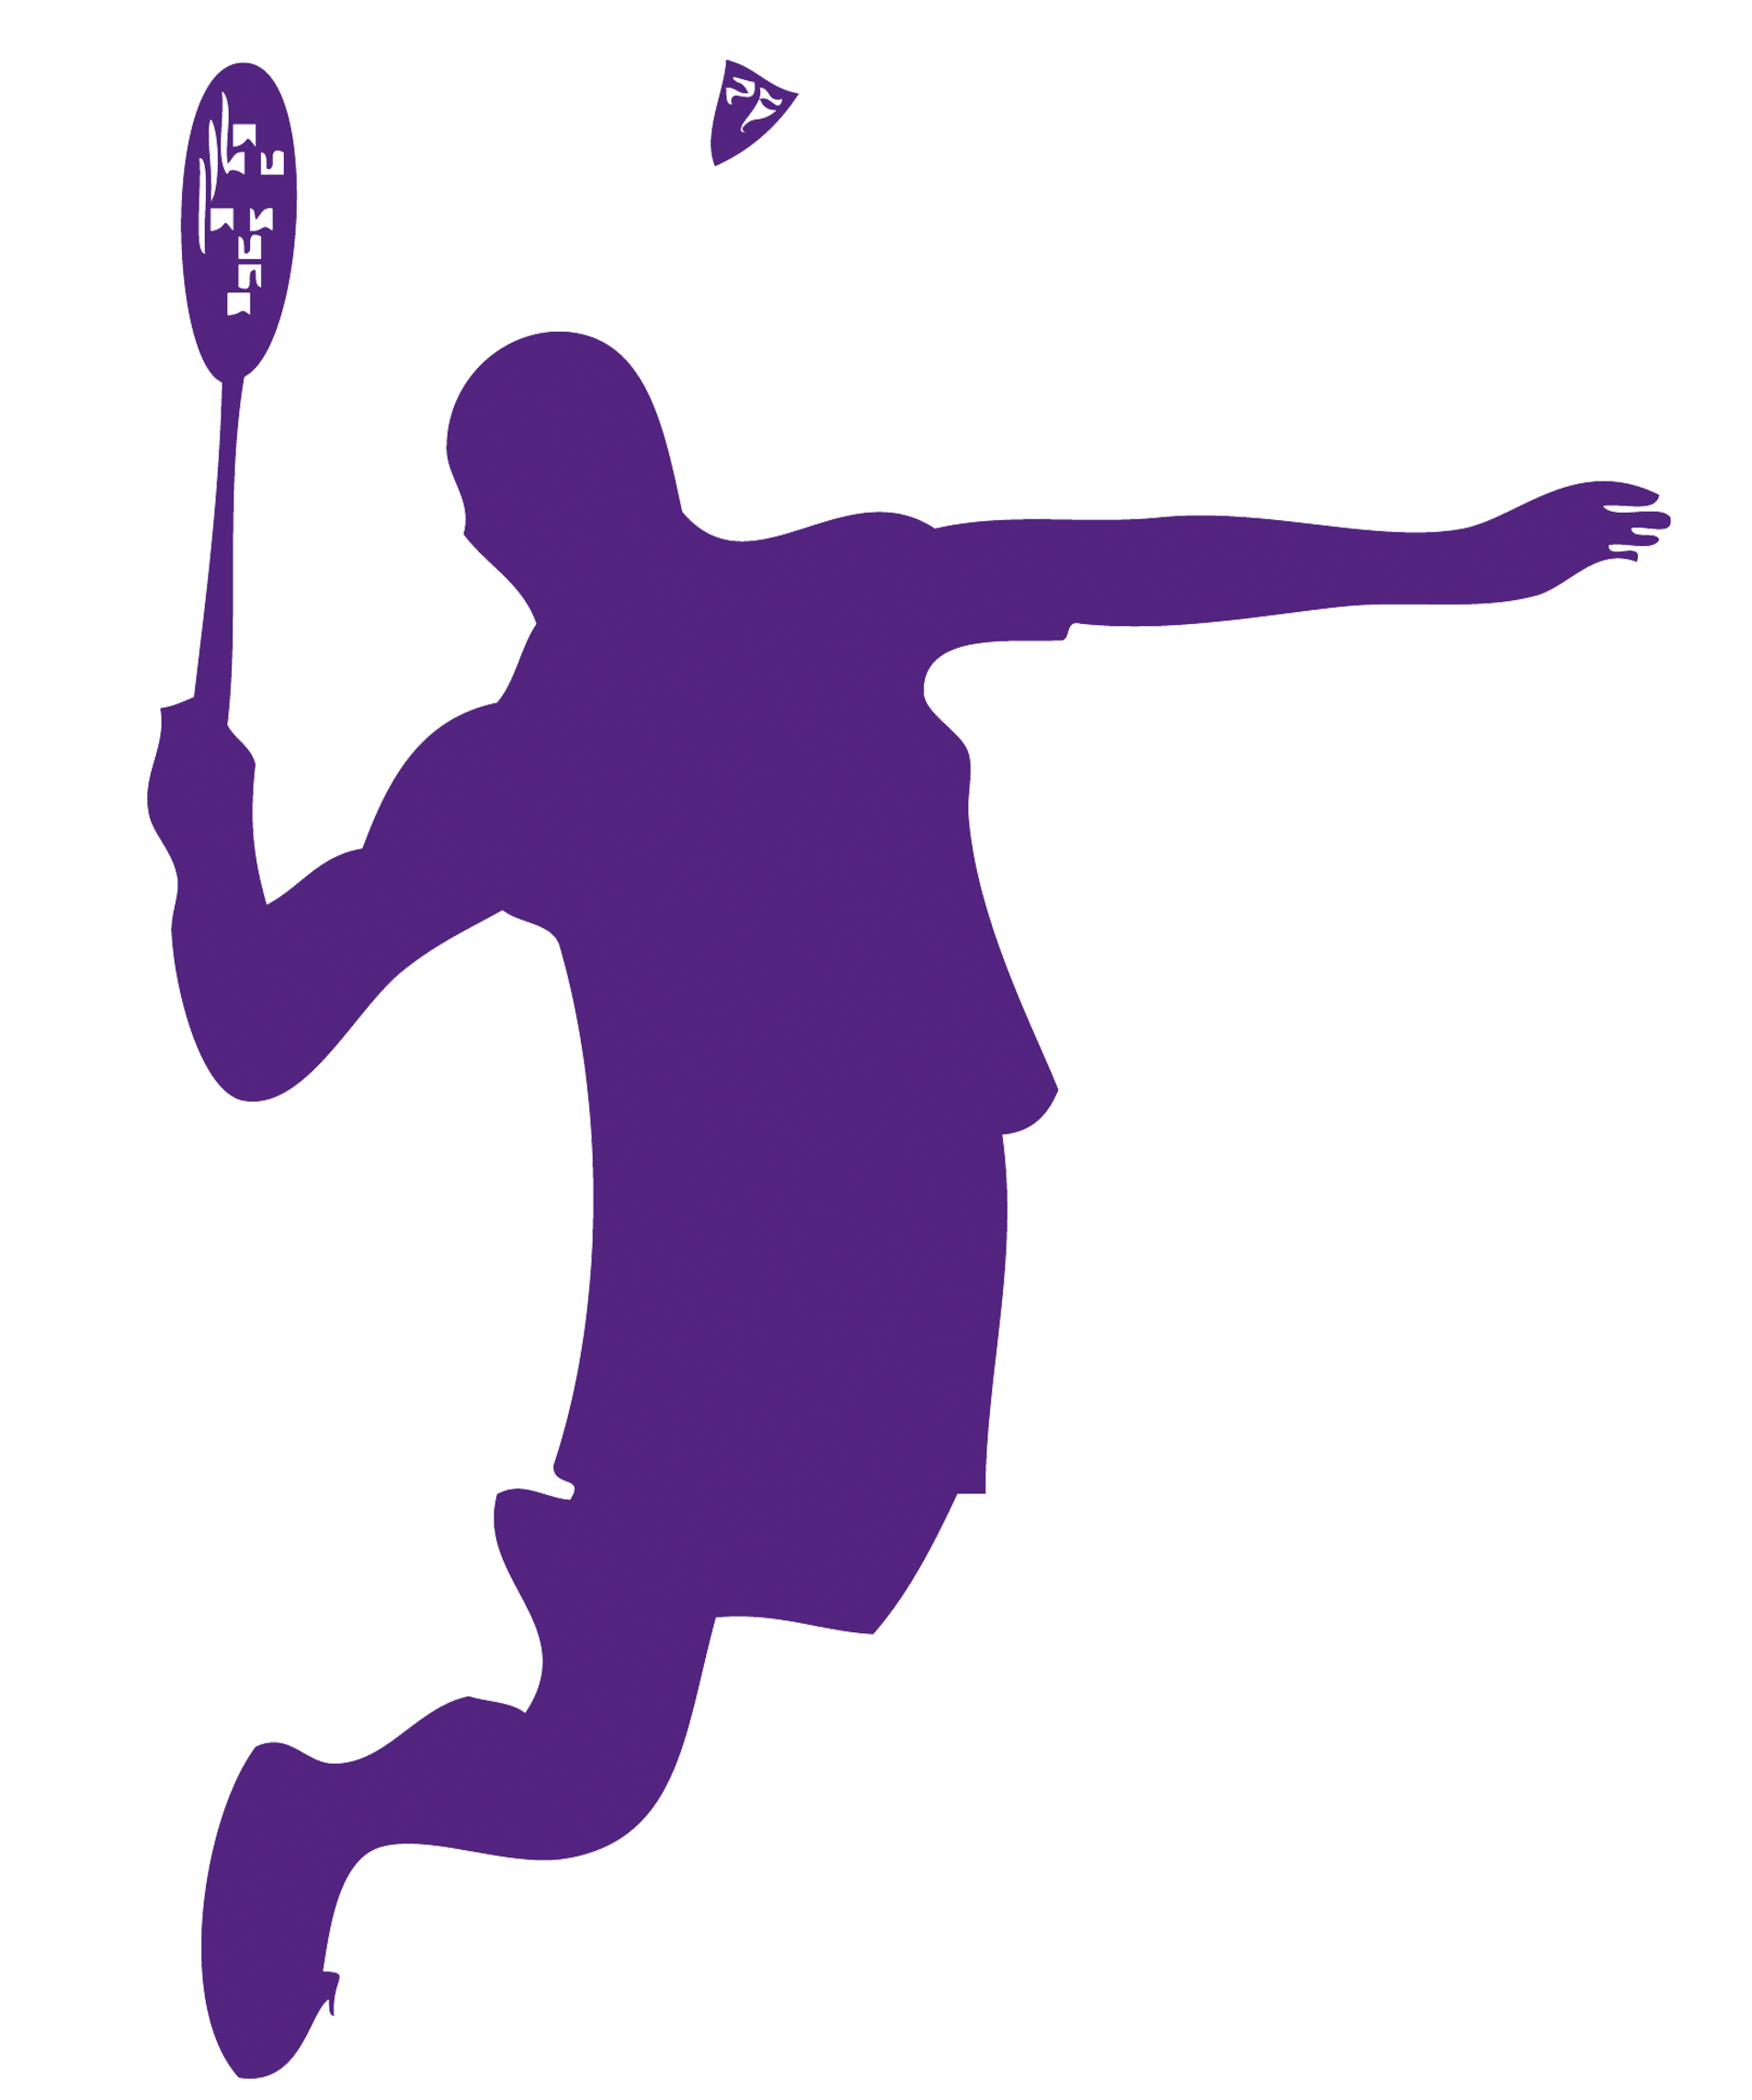 Download Badminton Free Download Png HQ PNG Image | FreePNGImg Badminton Player Png